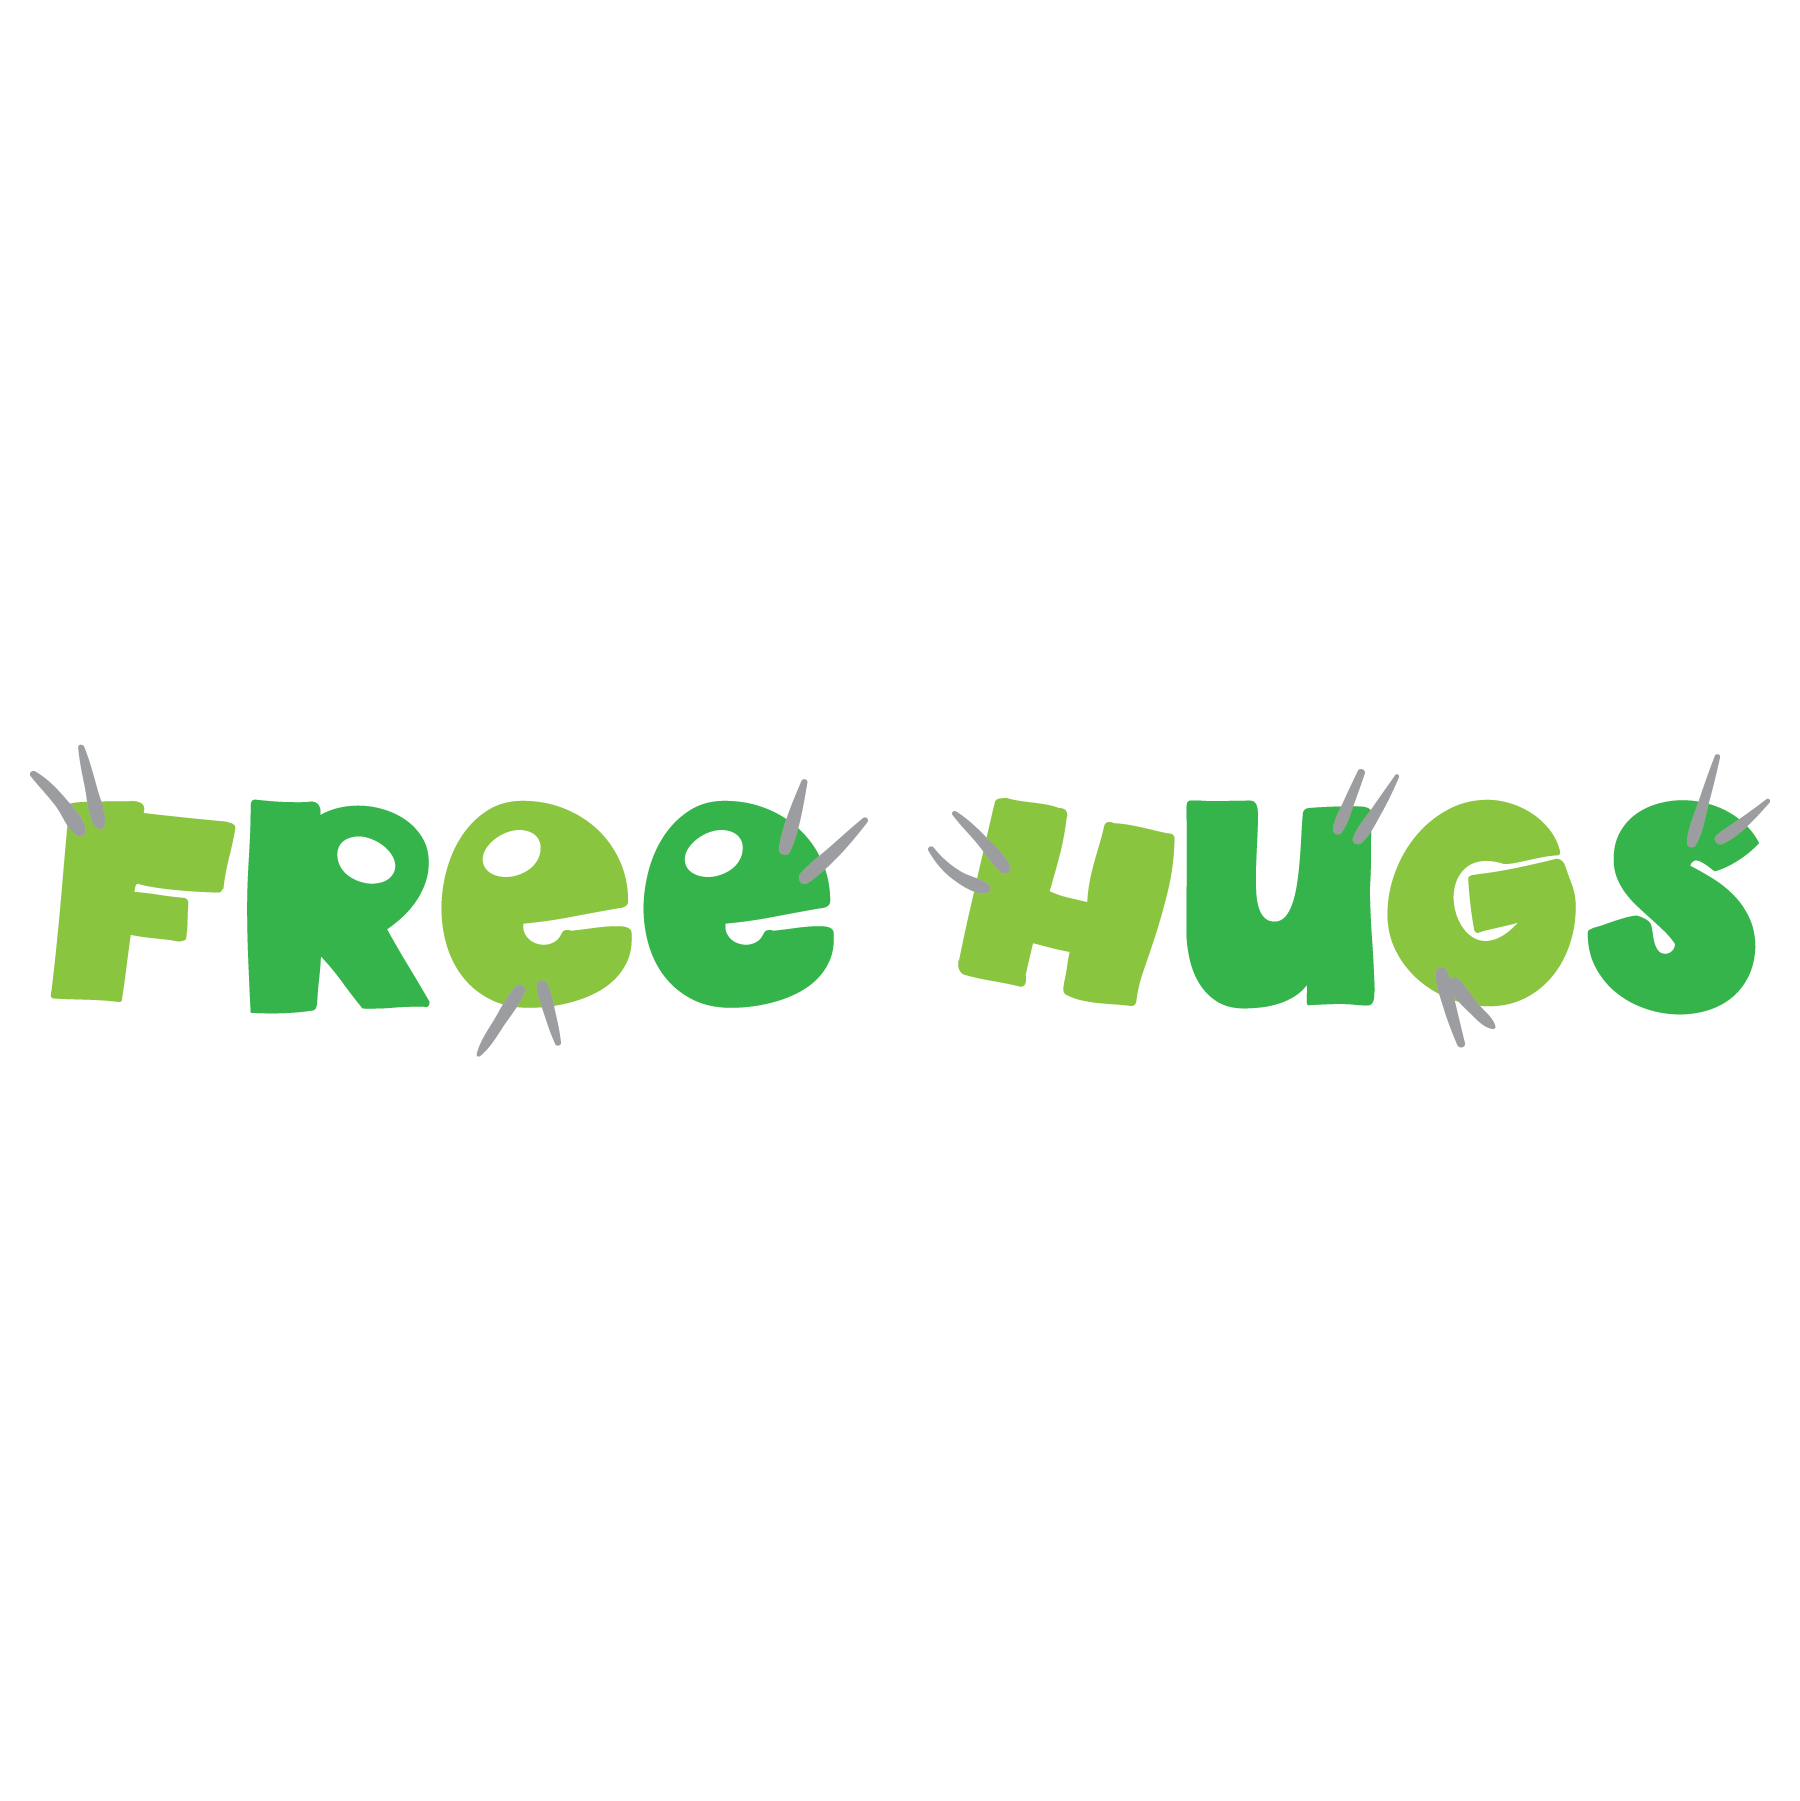 Cactus free hugs clipart. Humor text